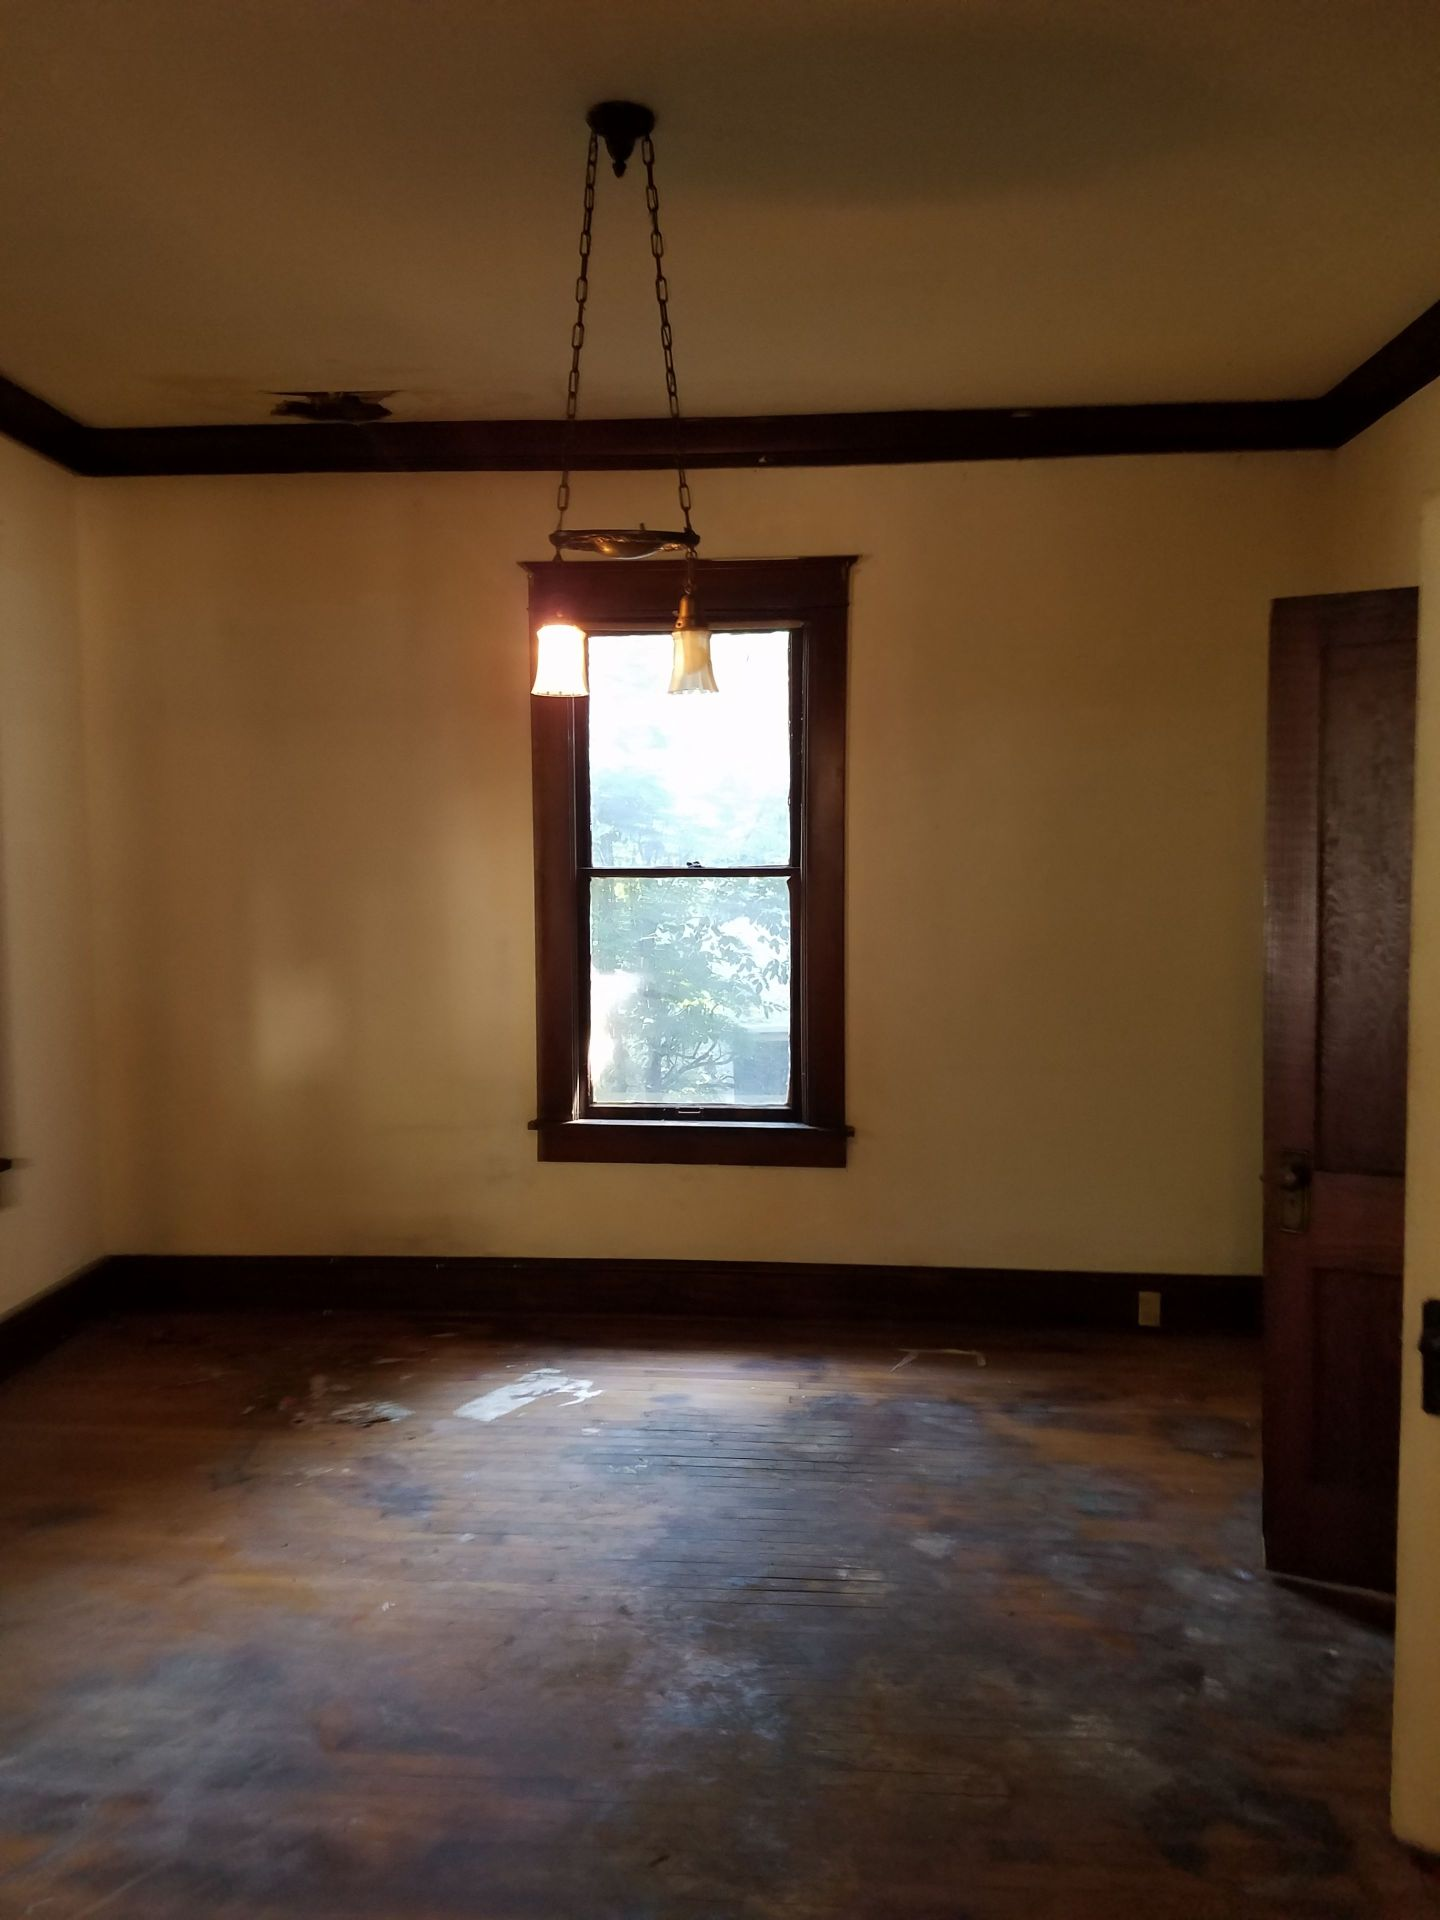 m1-1440x1920 Tips For Renovating as a First Time Homebuyer from a Memphis Expert